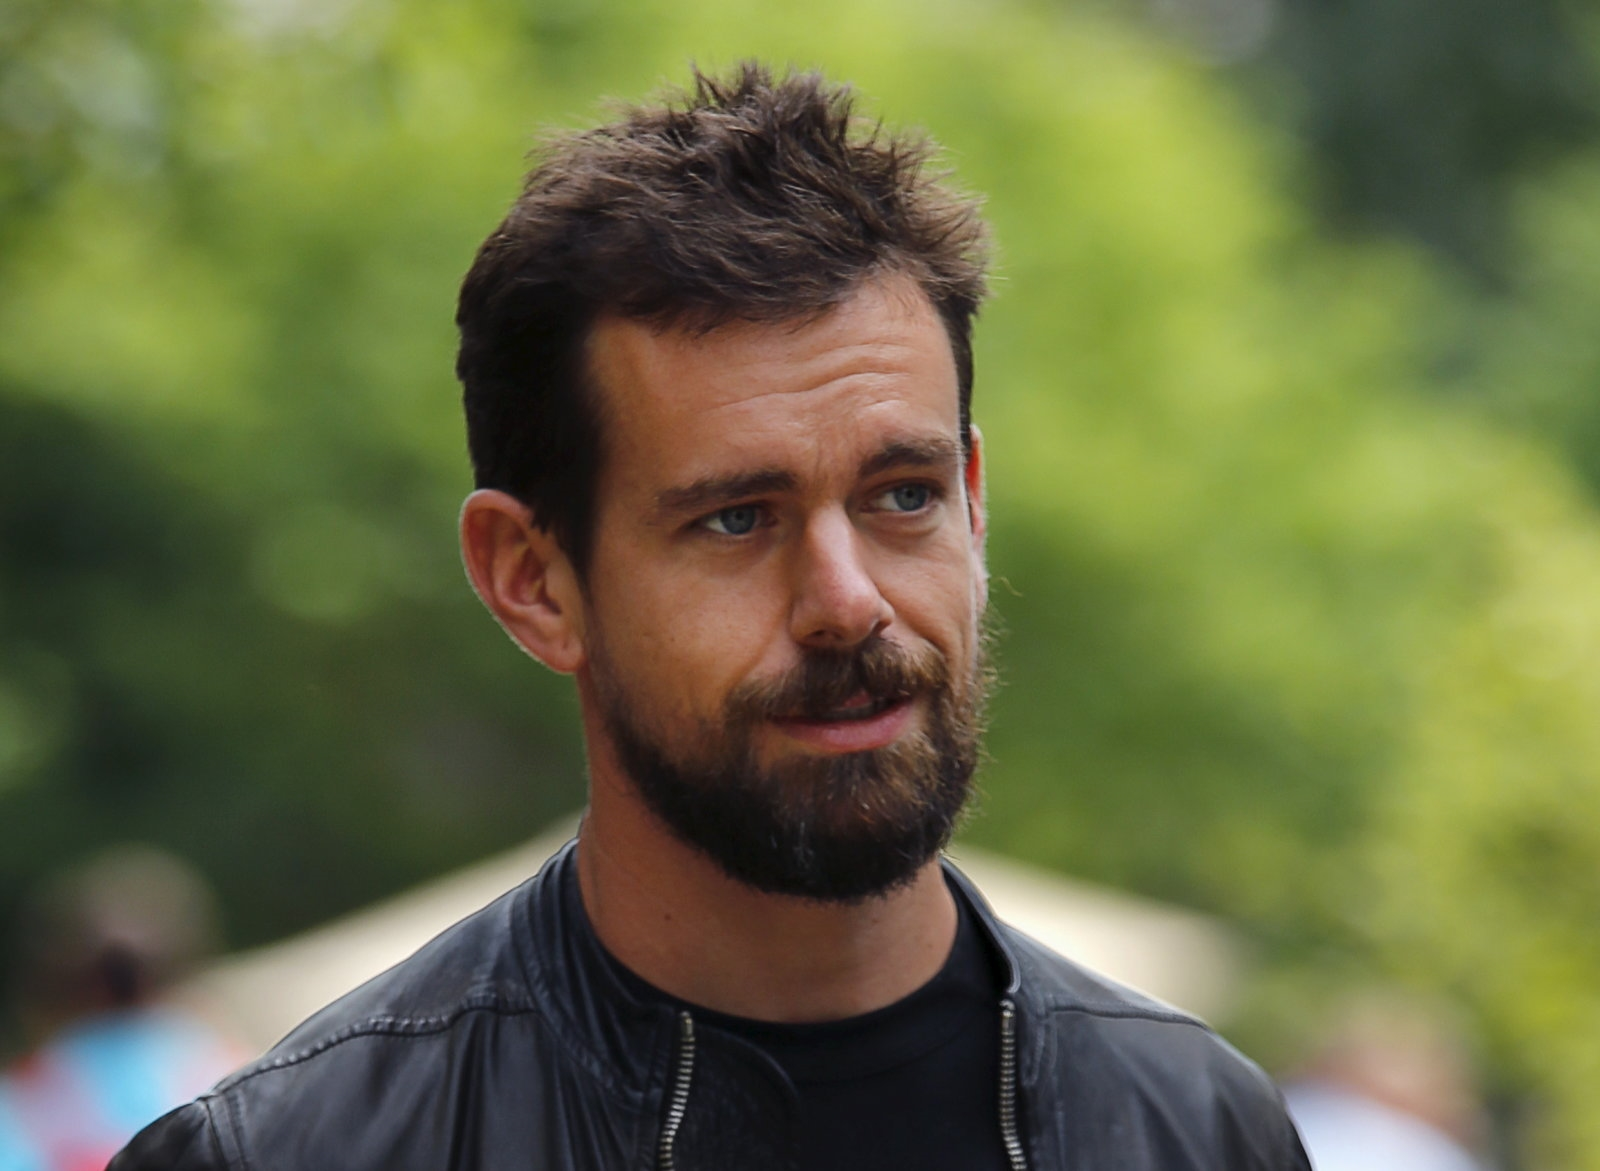 Jack Dorsey: Twitter isn't guided by 'political ideology' | DeviceDaily.com